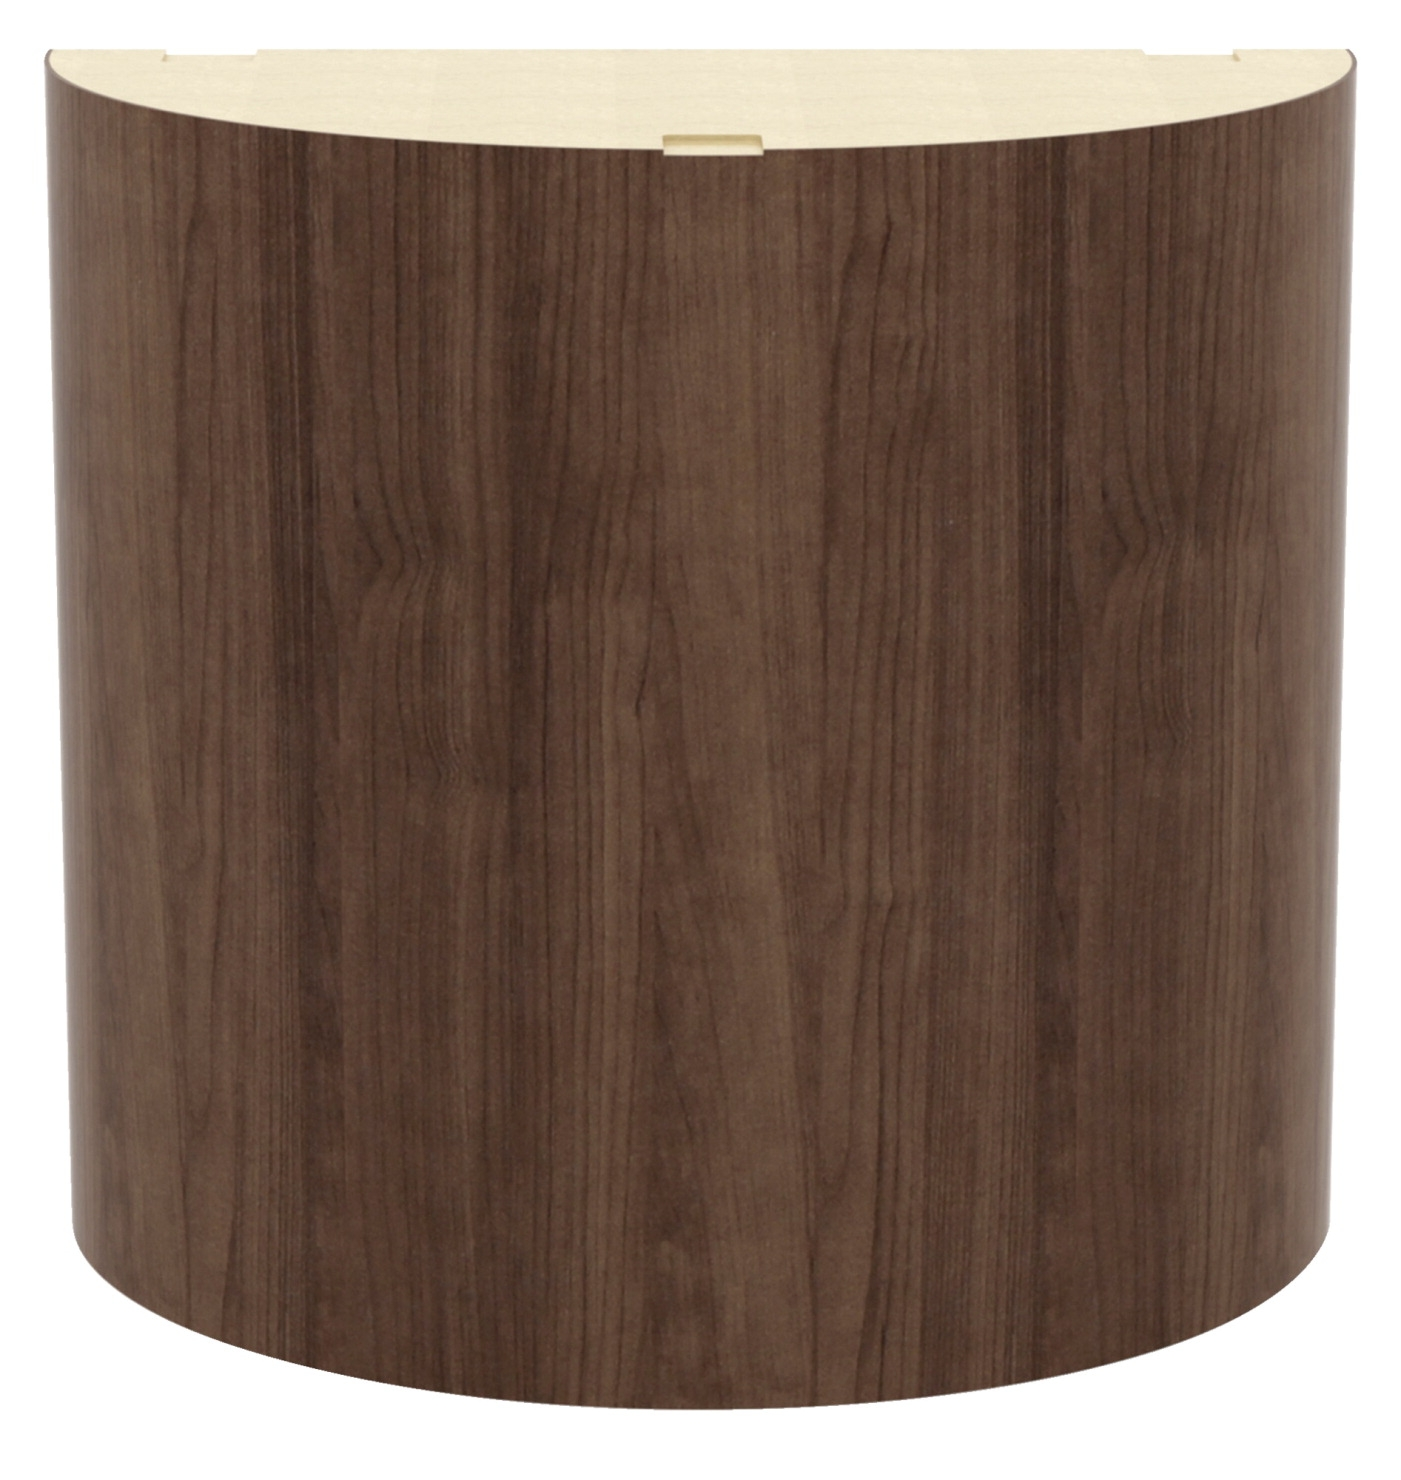 Lorell Prominence Conference Curved Base; 28-1/2 X 28-1/2 X 28 Inches; Walnut - 1575077 - Games Game Tables Pool Tables 1575077